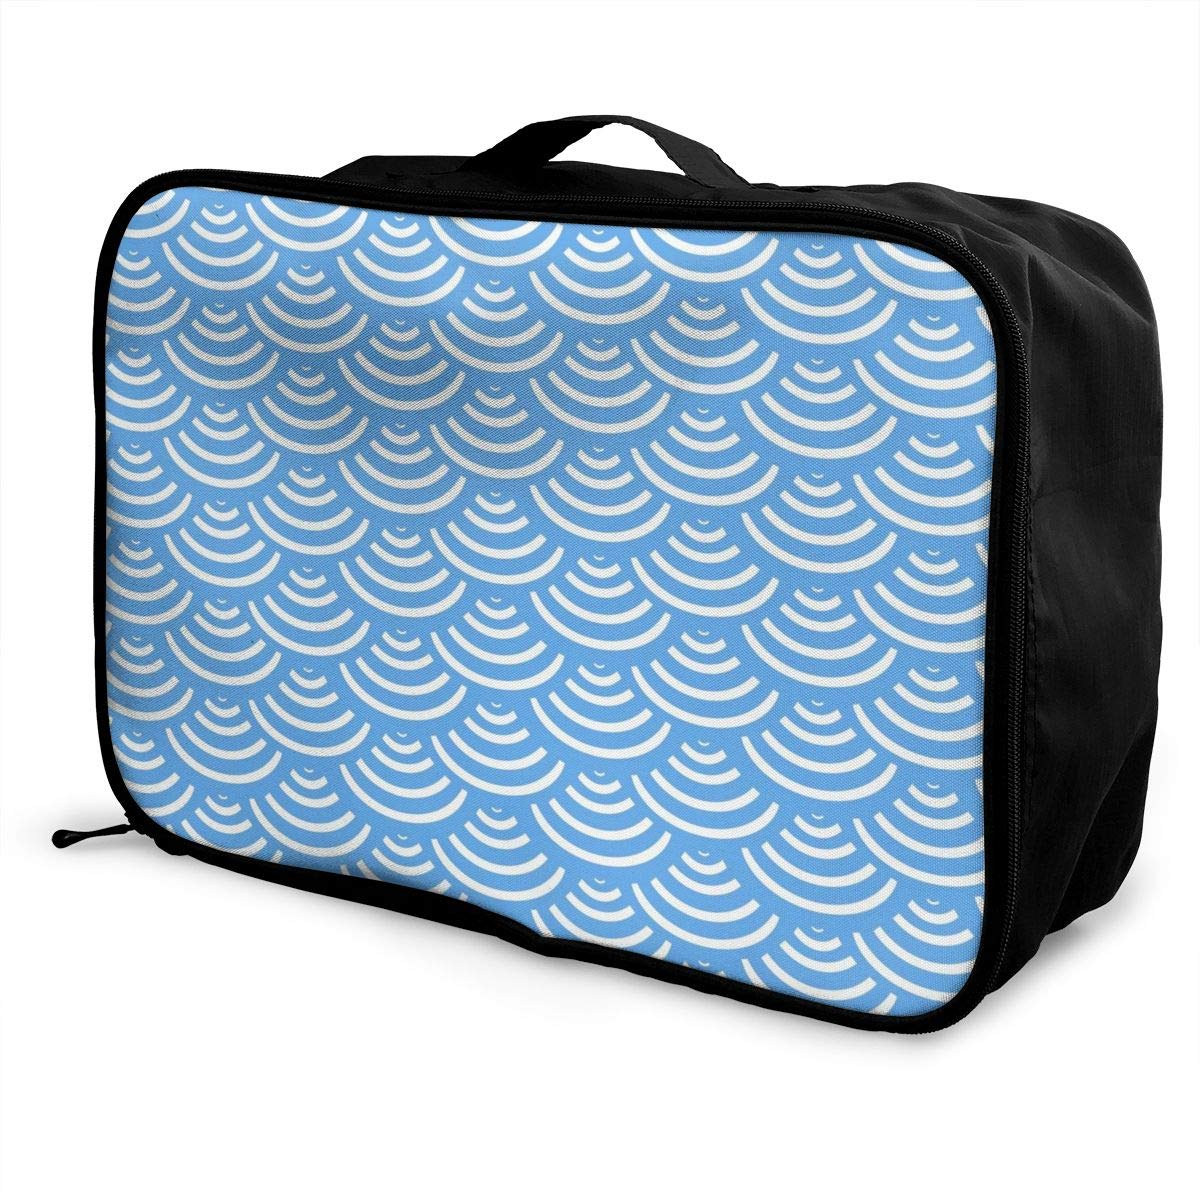 Travel Duffle Bag Weekend Bags In Trolley Handle Japanese Happy Sushi Family Luggage Hanging Bag Waterproof Nylon Luggage Duffel Bag Hand Bag For Camping Party Vacation